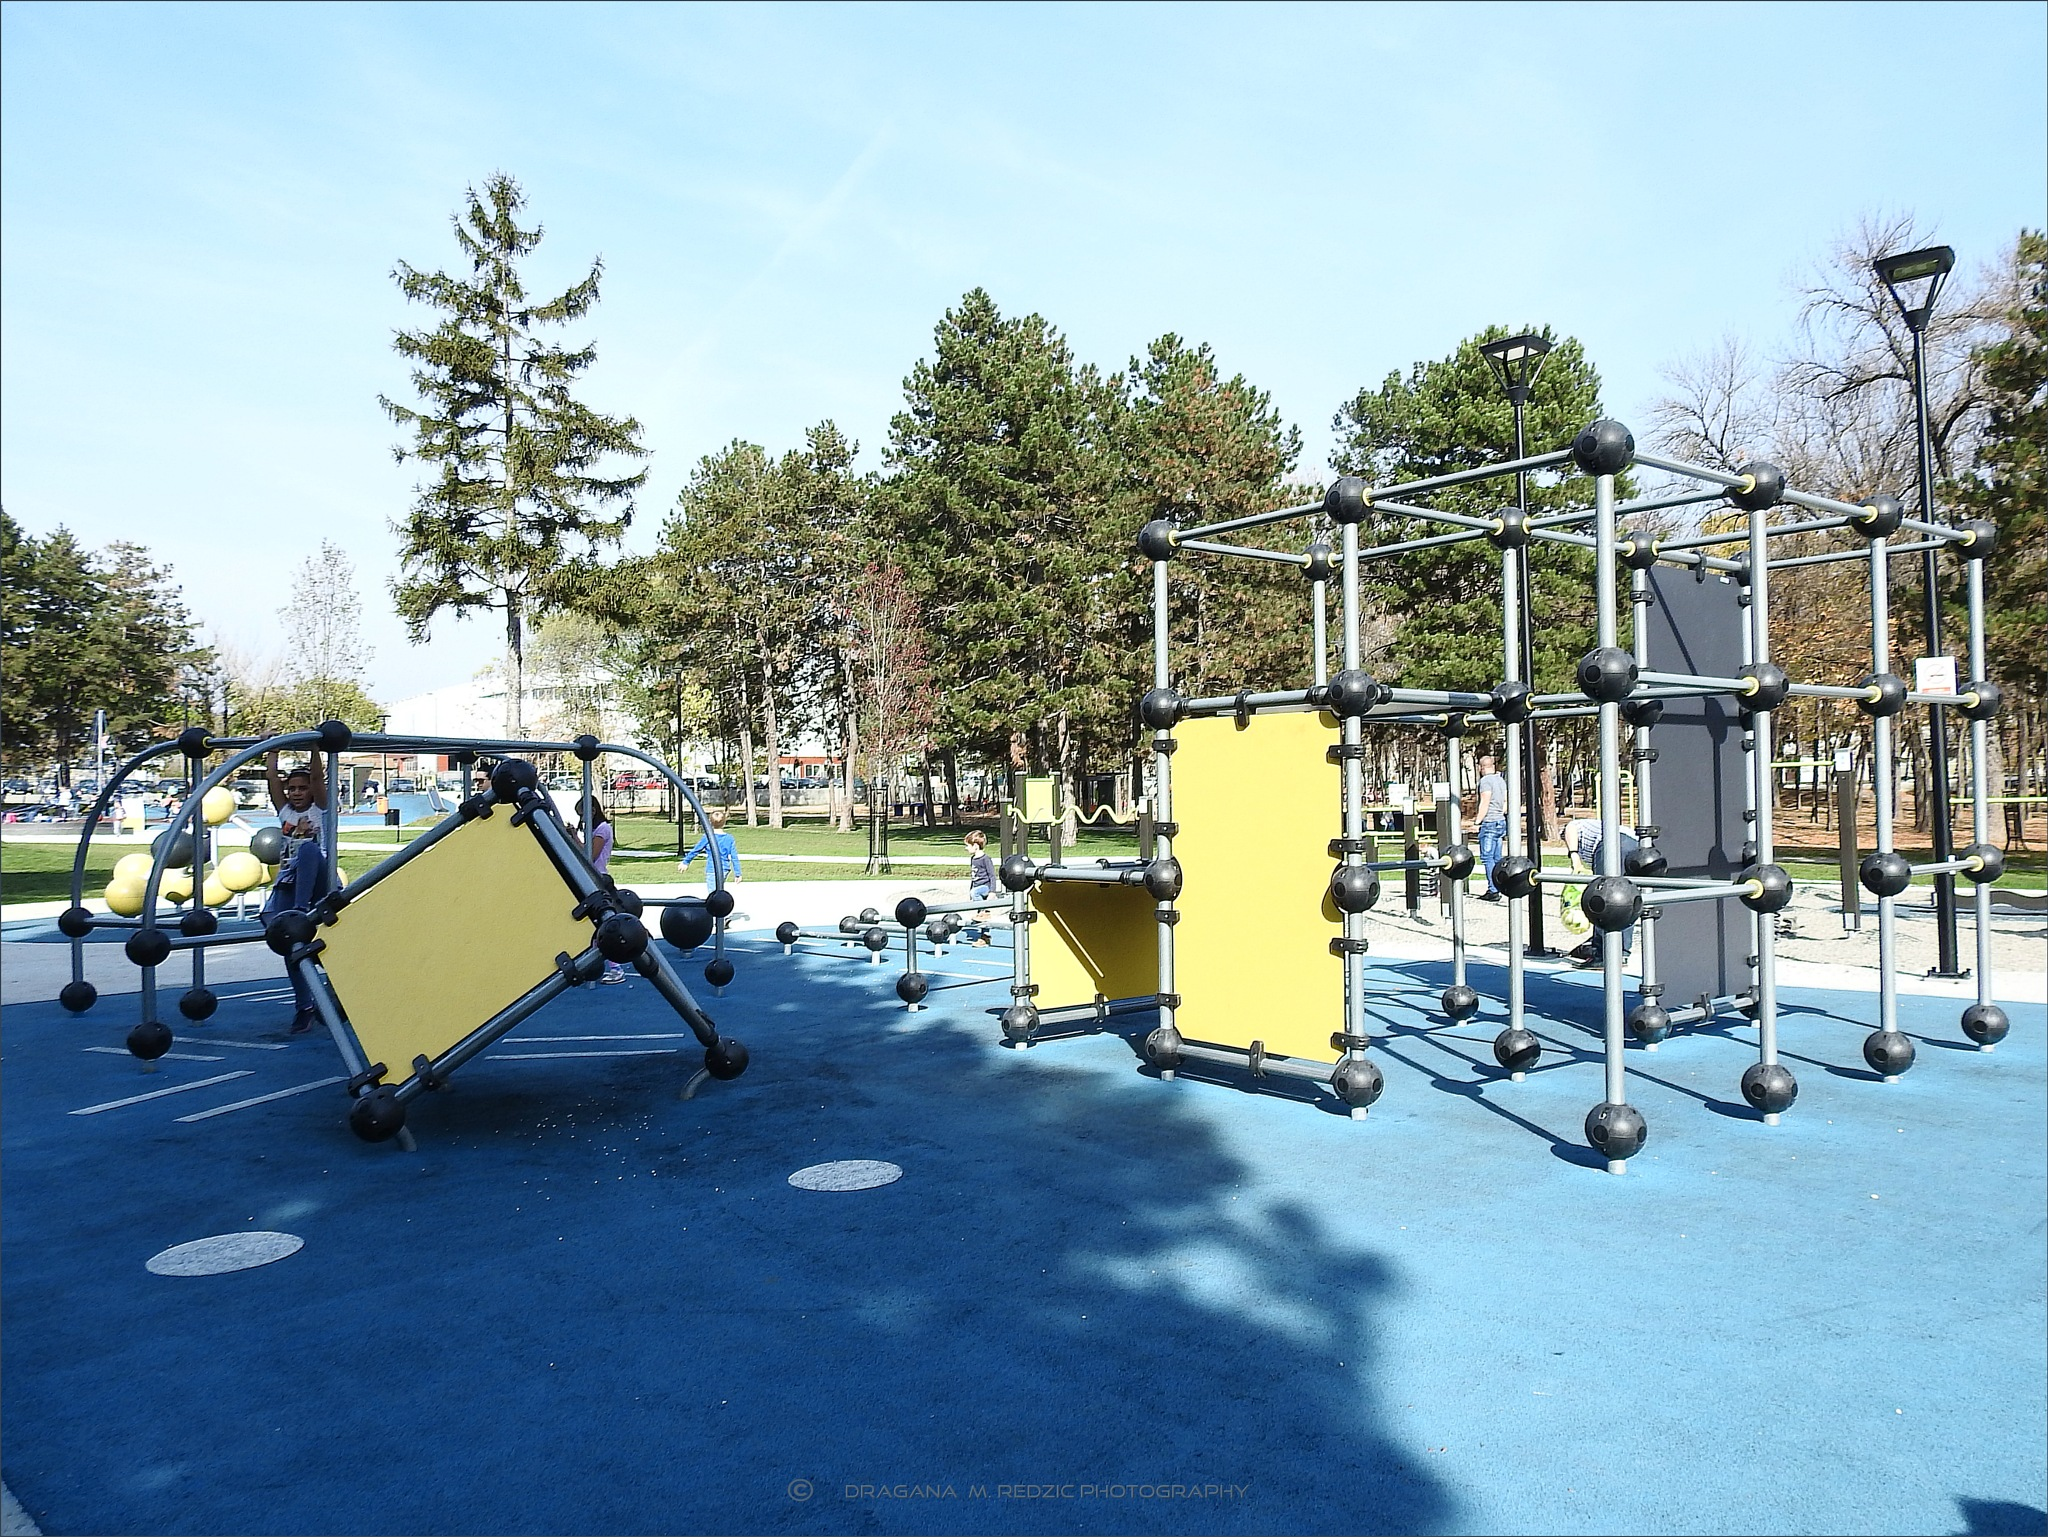 Children's sports and recreational playroom 01 - Kragujevac, Serbia by Драгана М. Реџић